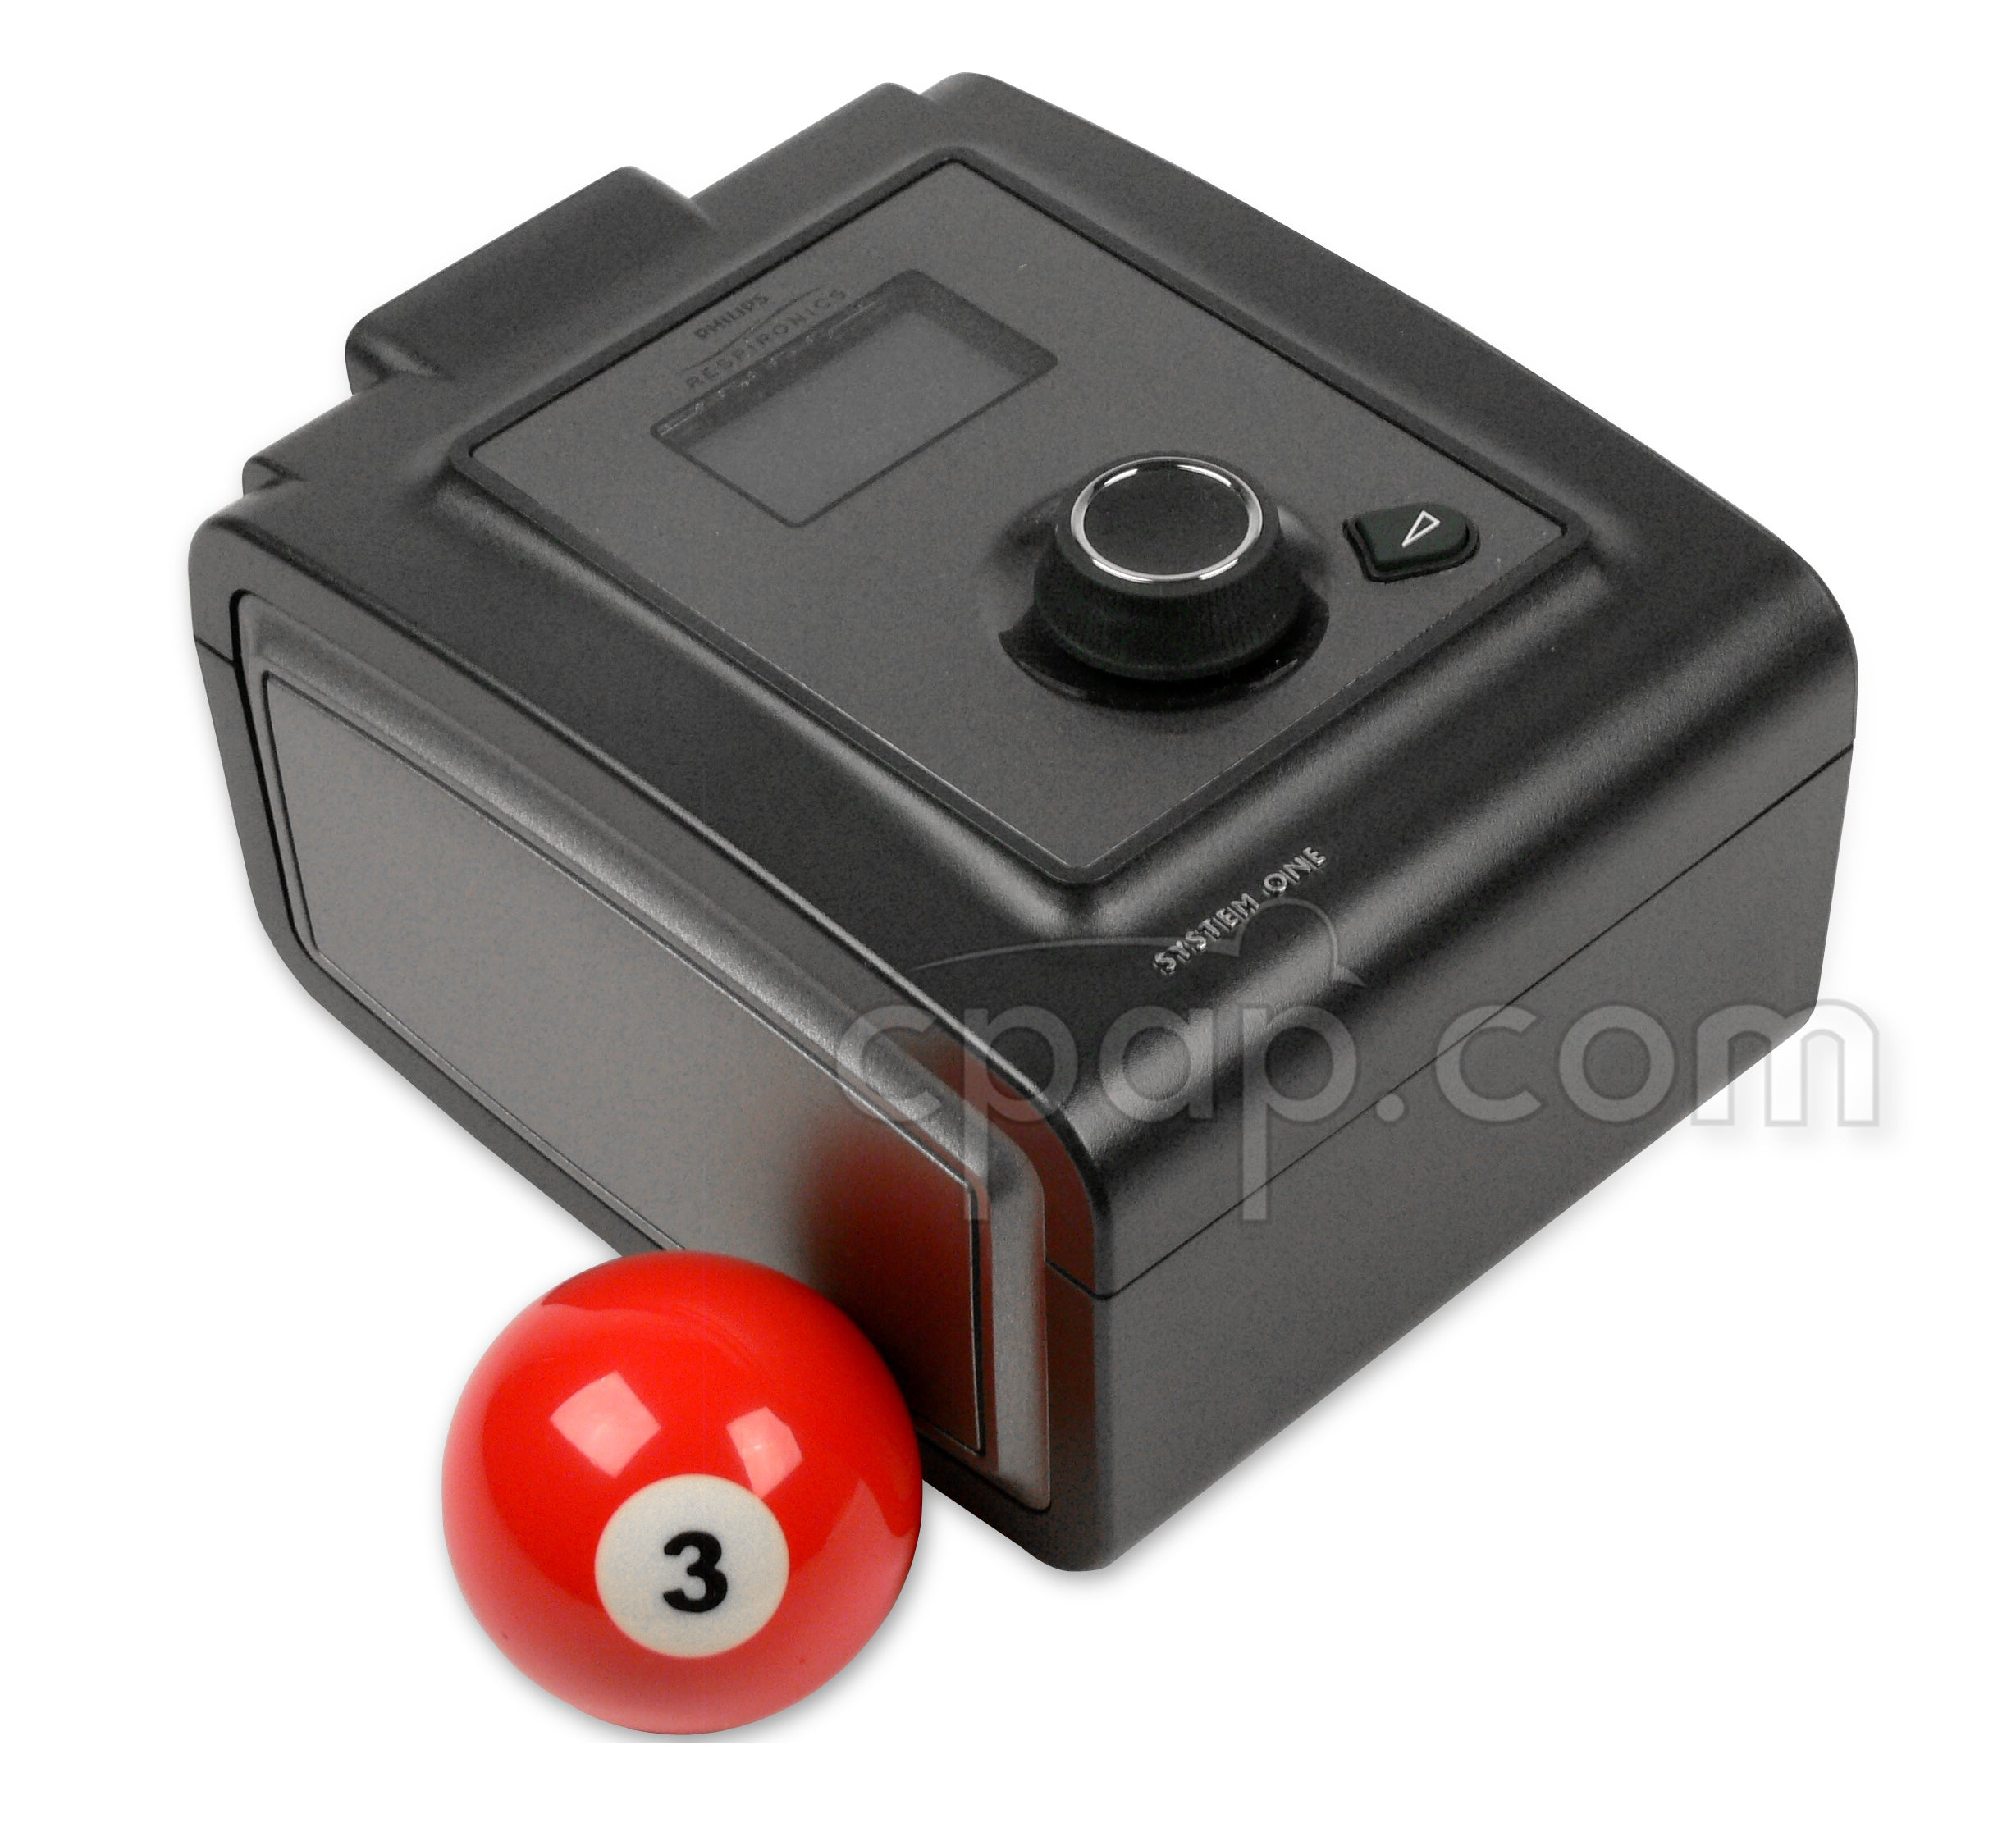 PR System One 60 Series Machine - angled front (billiard ball not included)